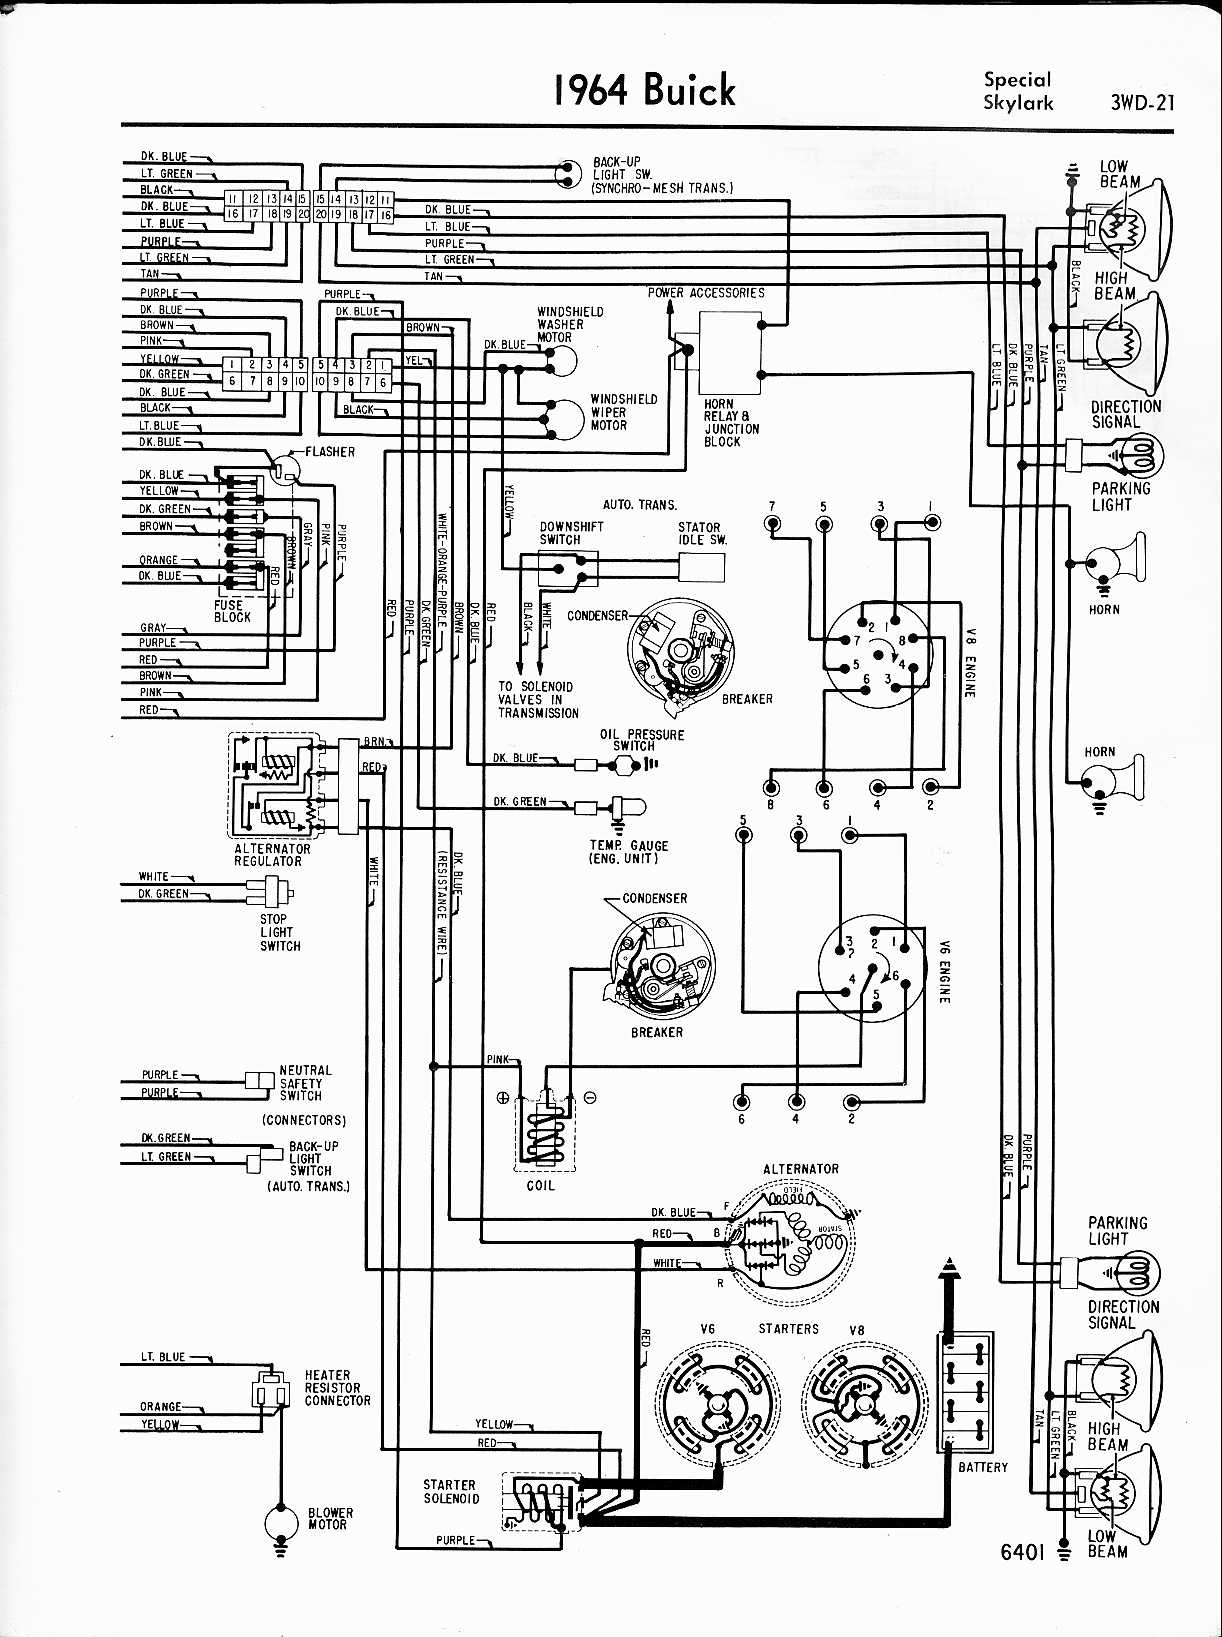 1966 buick riviera wiring diagram simple wiring diagram 2010 buick lacrosse  wiring-diagram buick wiring